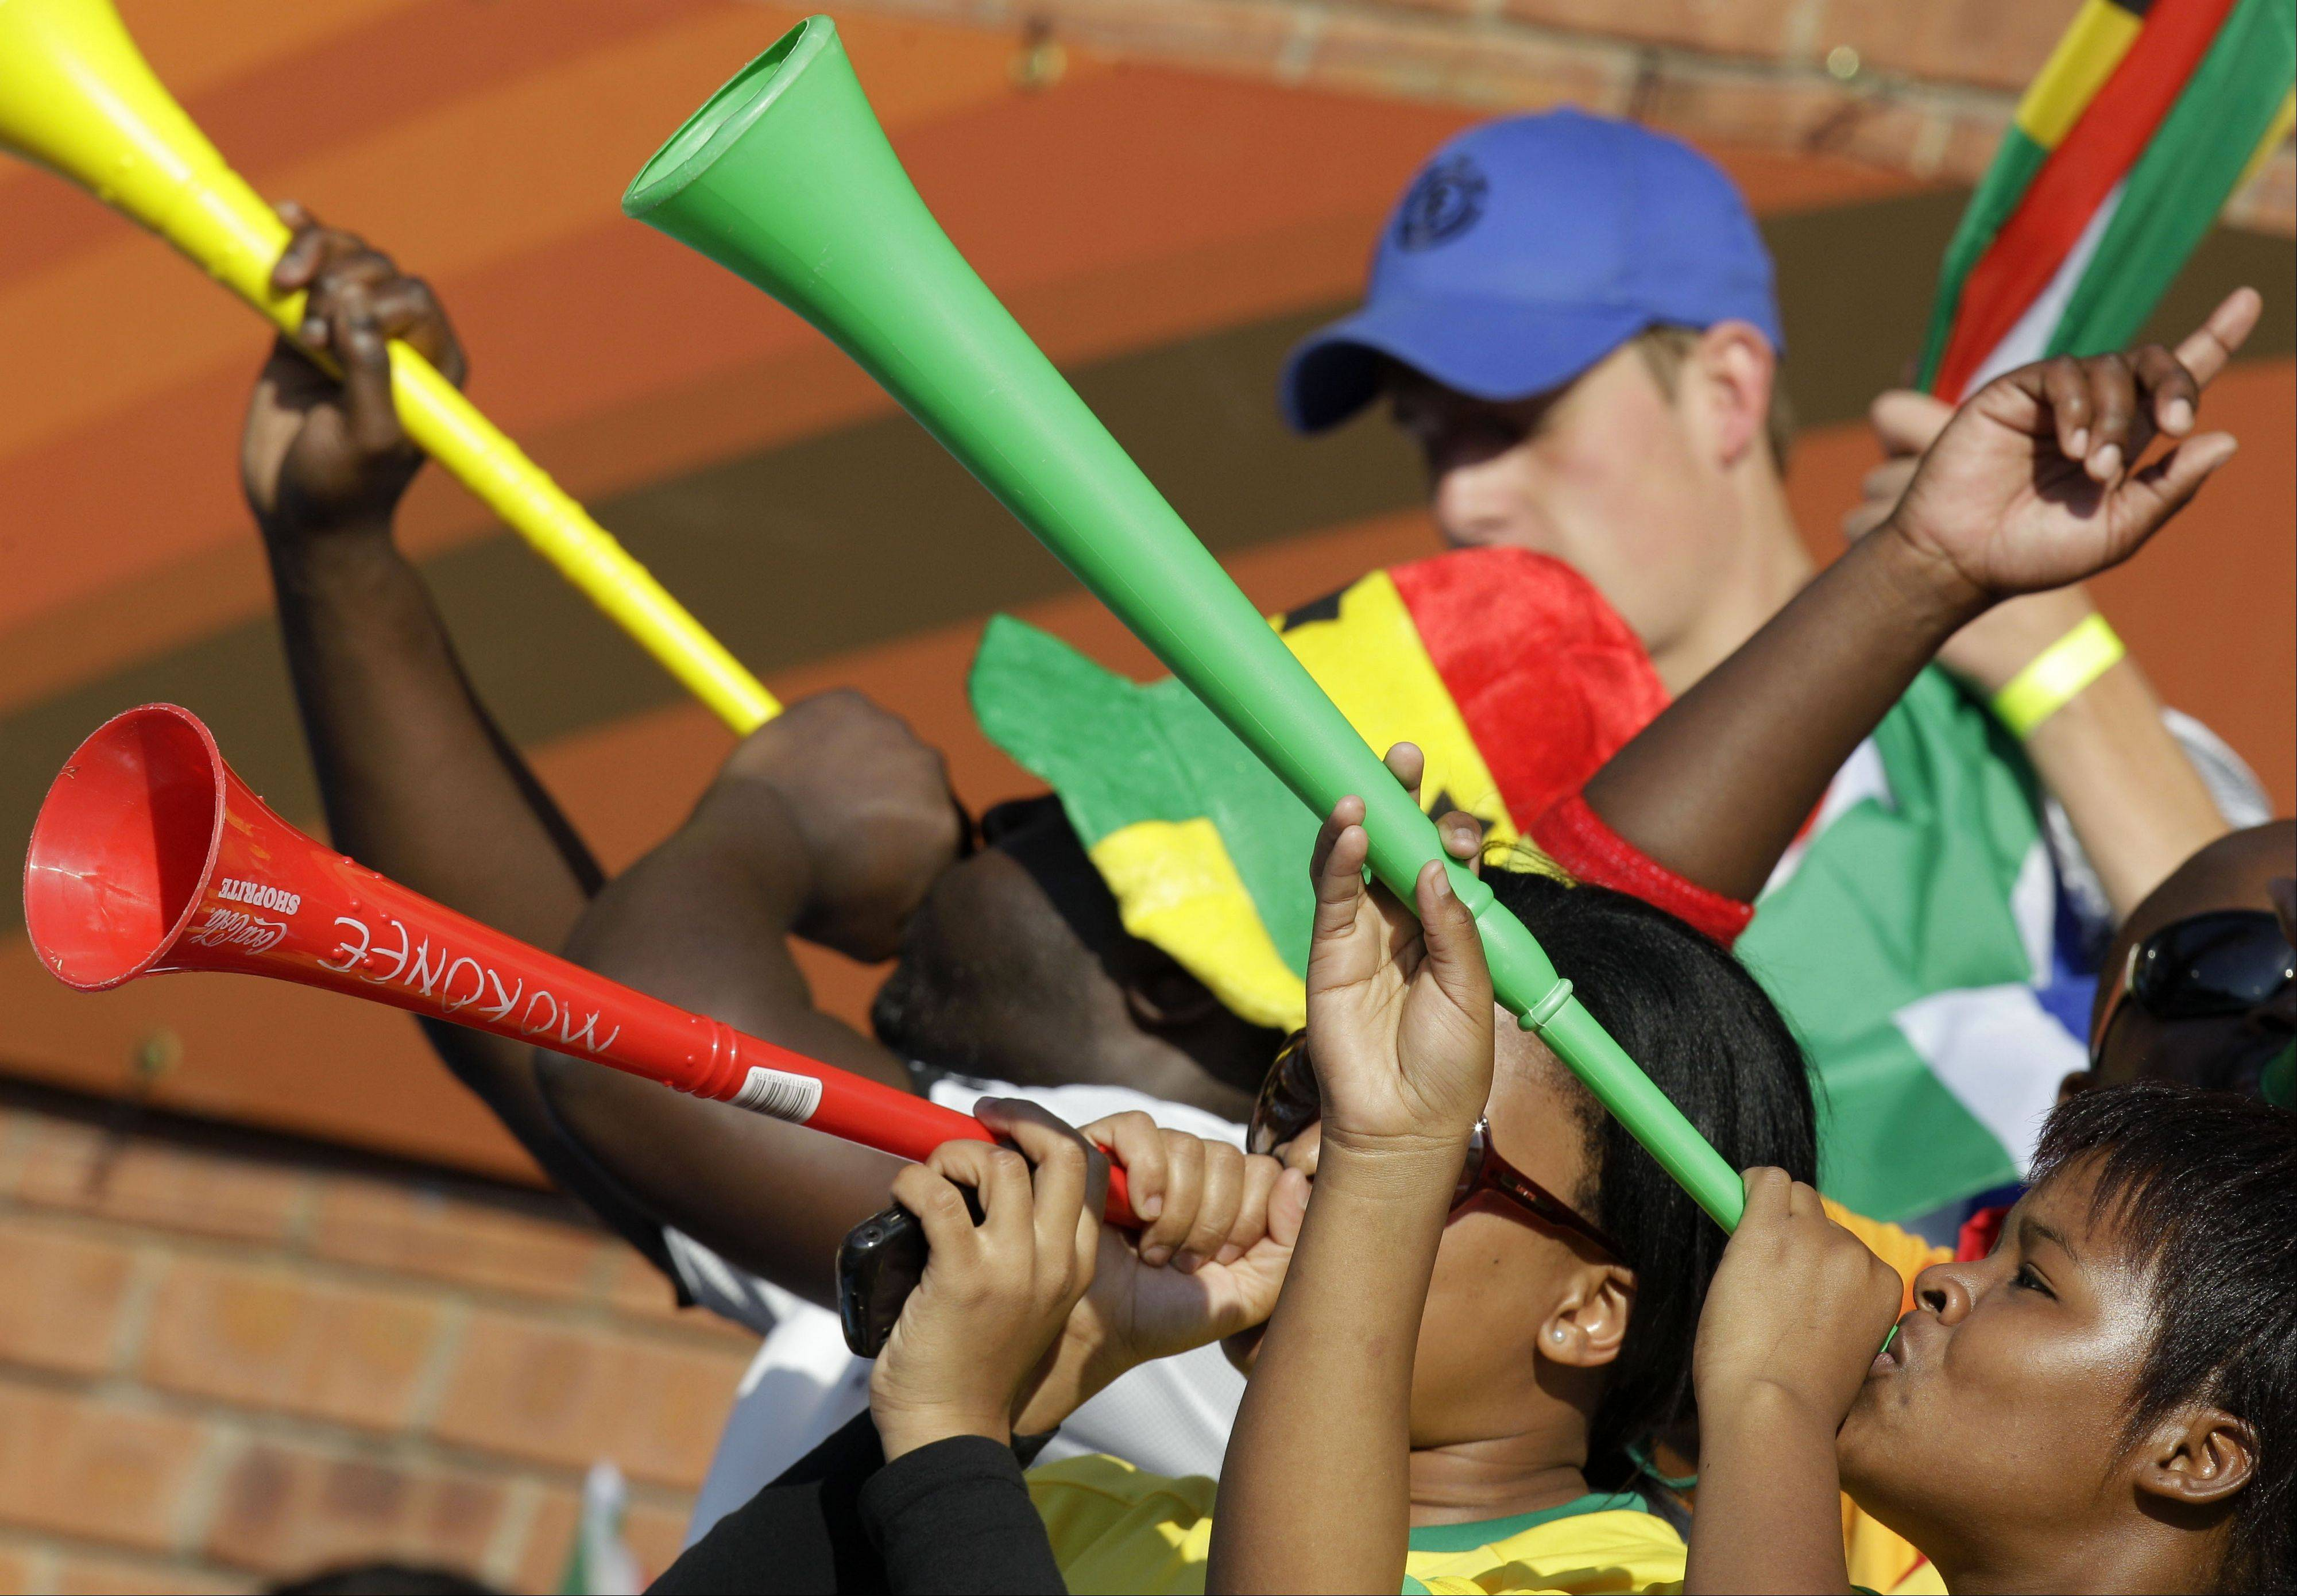 Fans play their vuvuzelas before a World Cup group match in Pretoria, South Africa, on June 13, 2010. A report now says the South African government spent more than $3 billion to host the tournament, including $1.1 billion on stadiums.